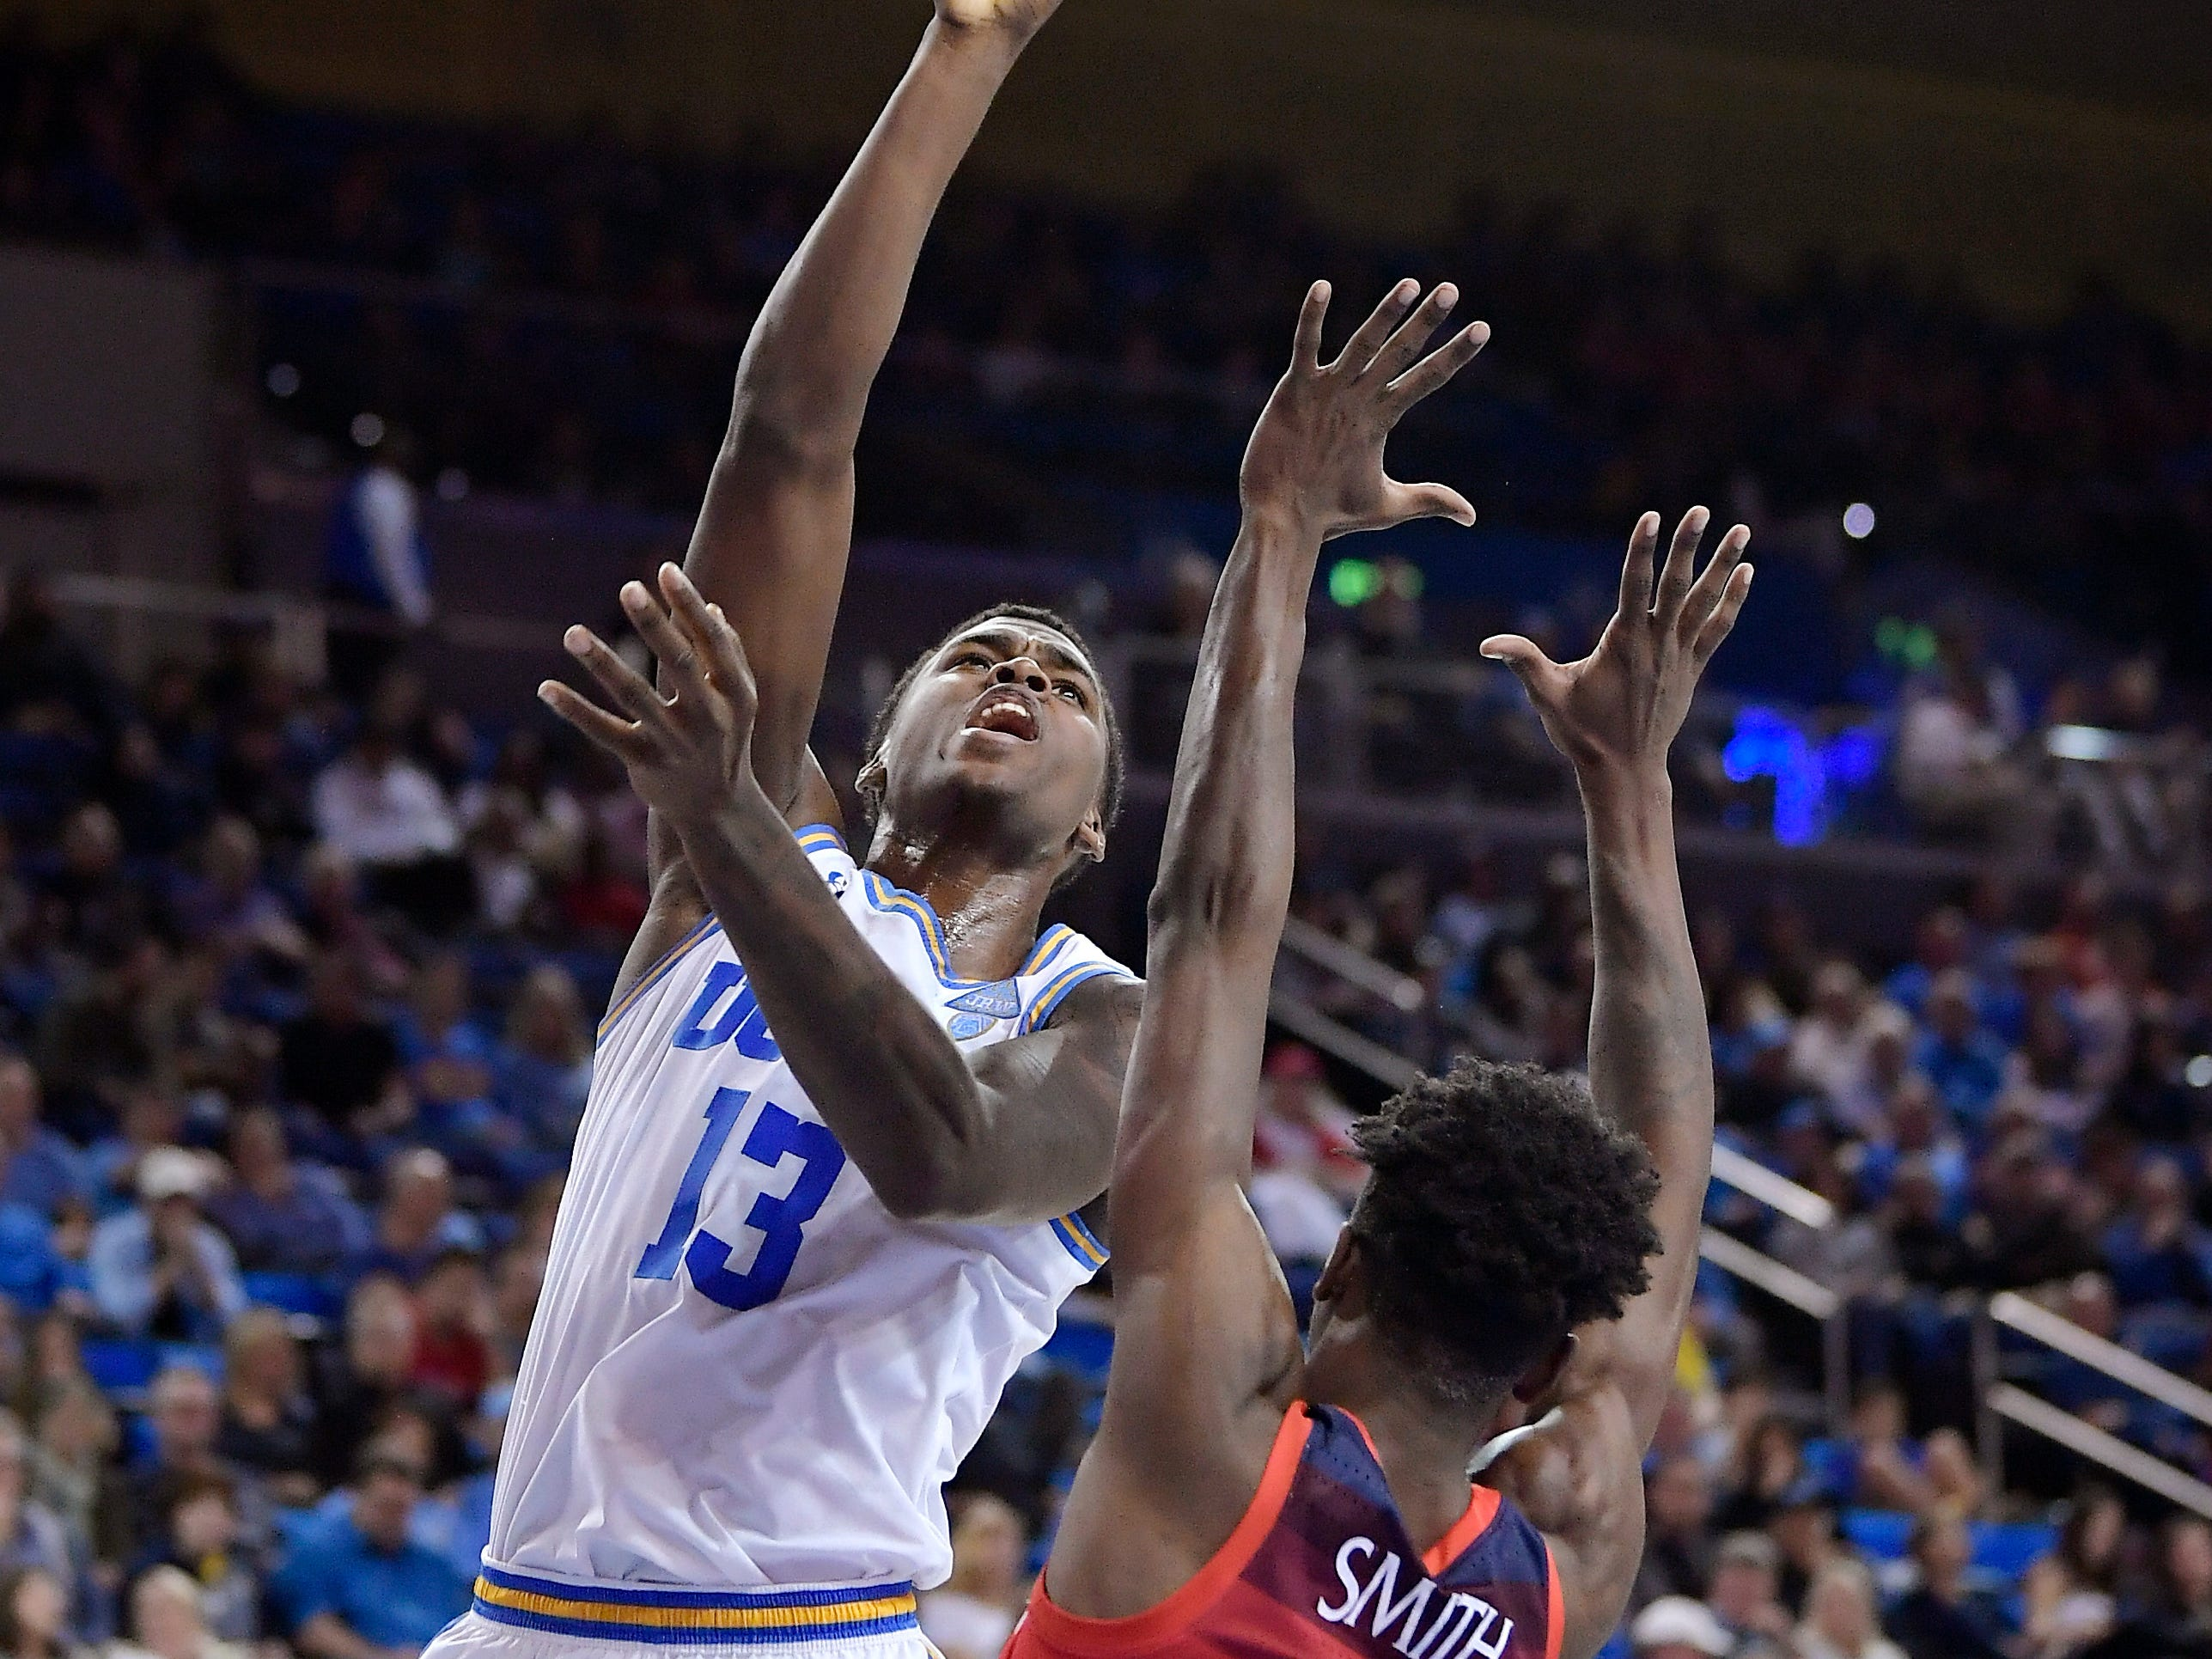 UCLA guard Kris Wilkes, left, shoots as Arizona guard Dylan Smith defends during the second half of an NCAA college basketball game Saturday, Jan. 26, 2019, in Los Angeles. UCLA won 90-69.